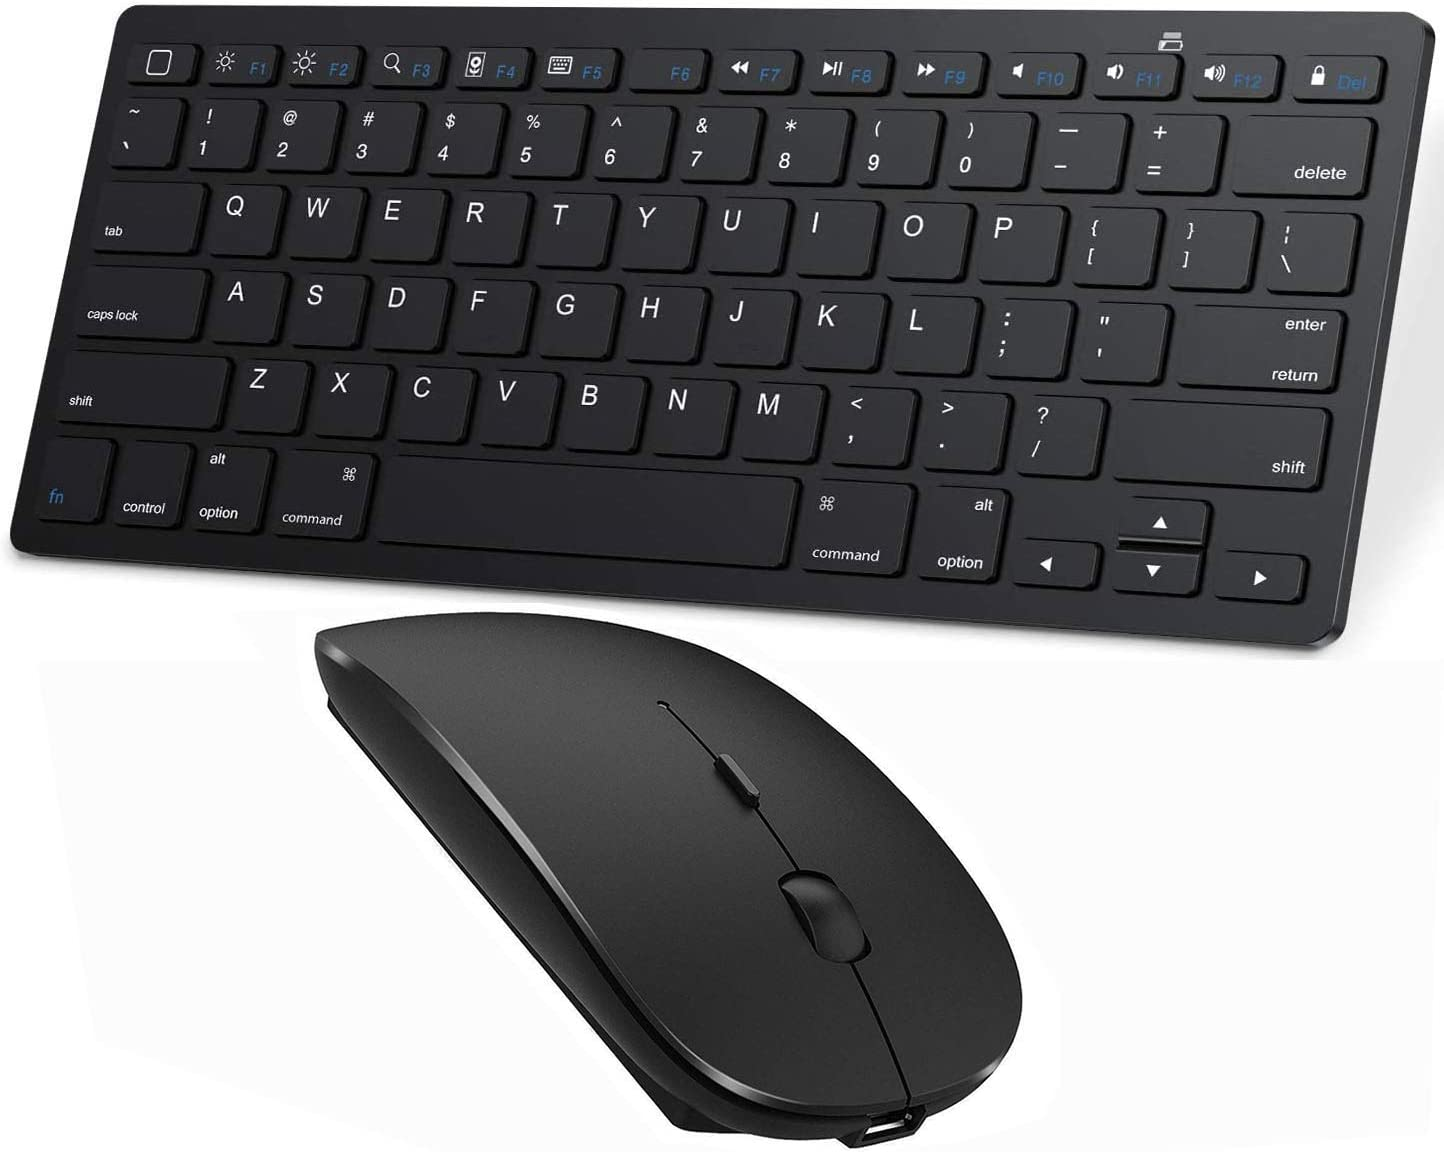 Bluetooth Keyboard and Mouse for iPad,ipad Keyboard and Mouse,Wireless Keyboard and Mouse for iPad iPad 10.2 / iPad Pro/iPad Air/iPad Mini (iPadOS 13 / iOS 13 and Above) (Black)